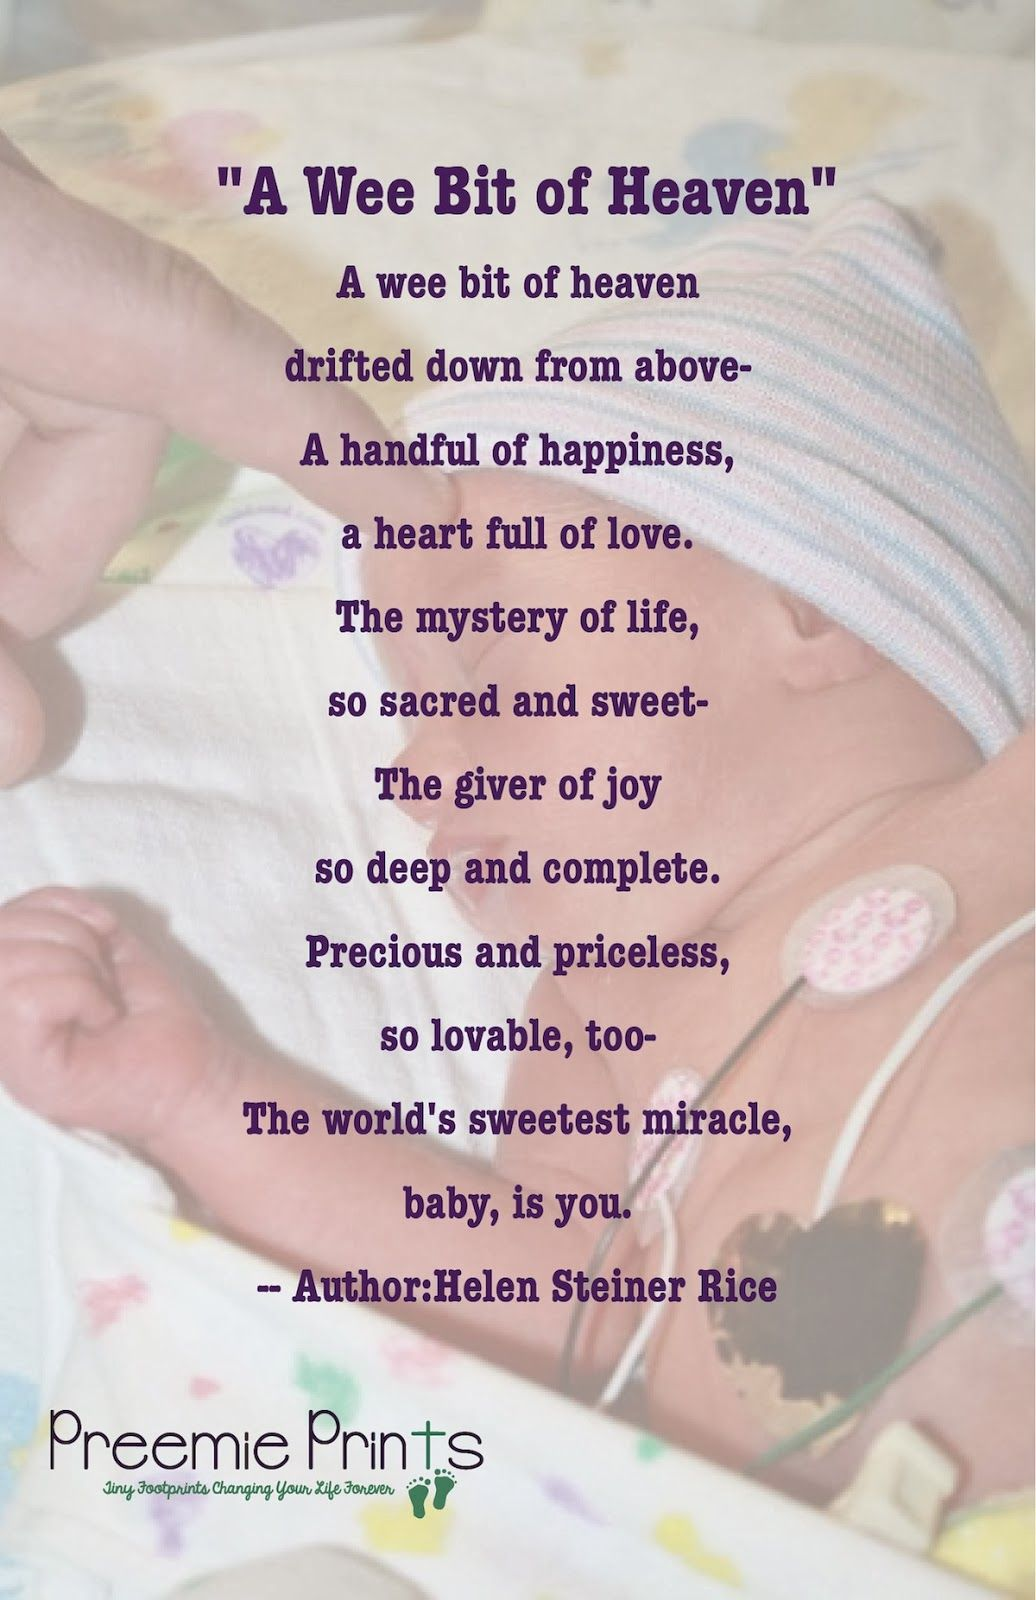 Premature Baby Quotes A Beautiful Baby Poem  Inspiration For Nicu Parents  Pinterest